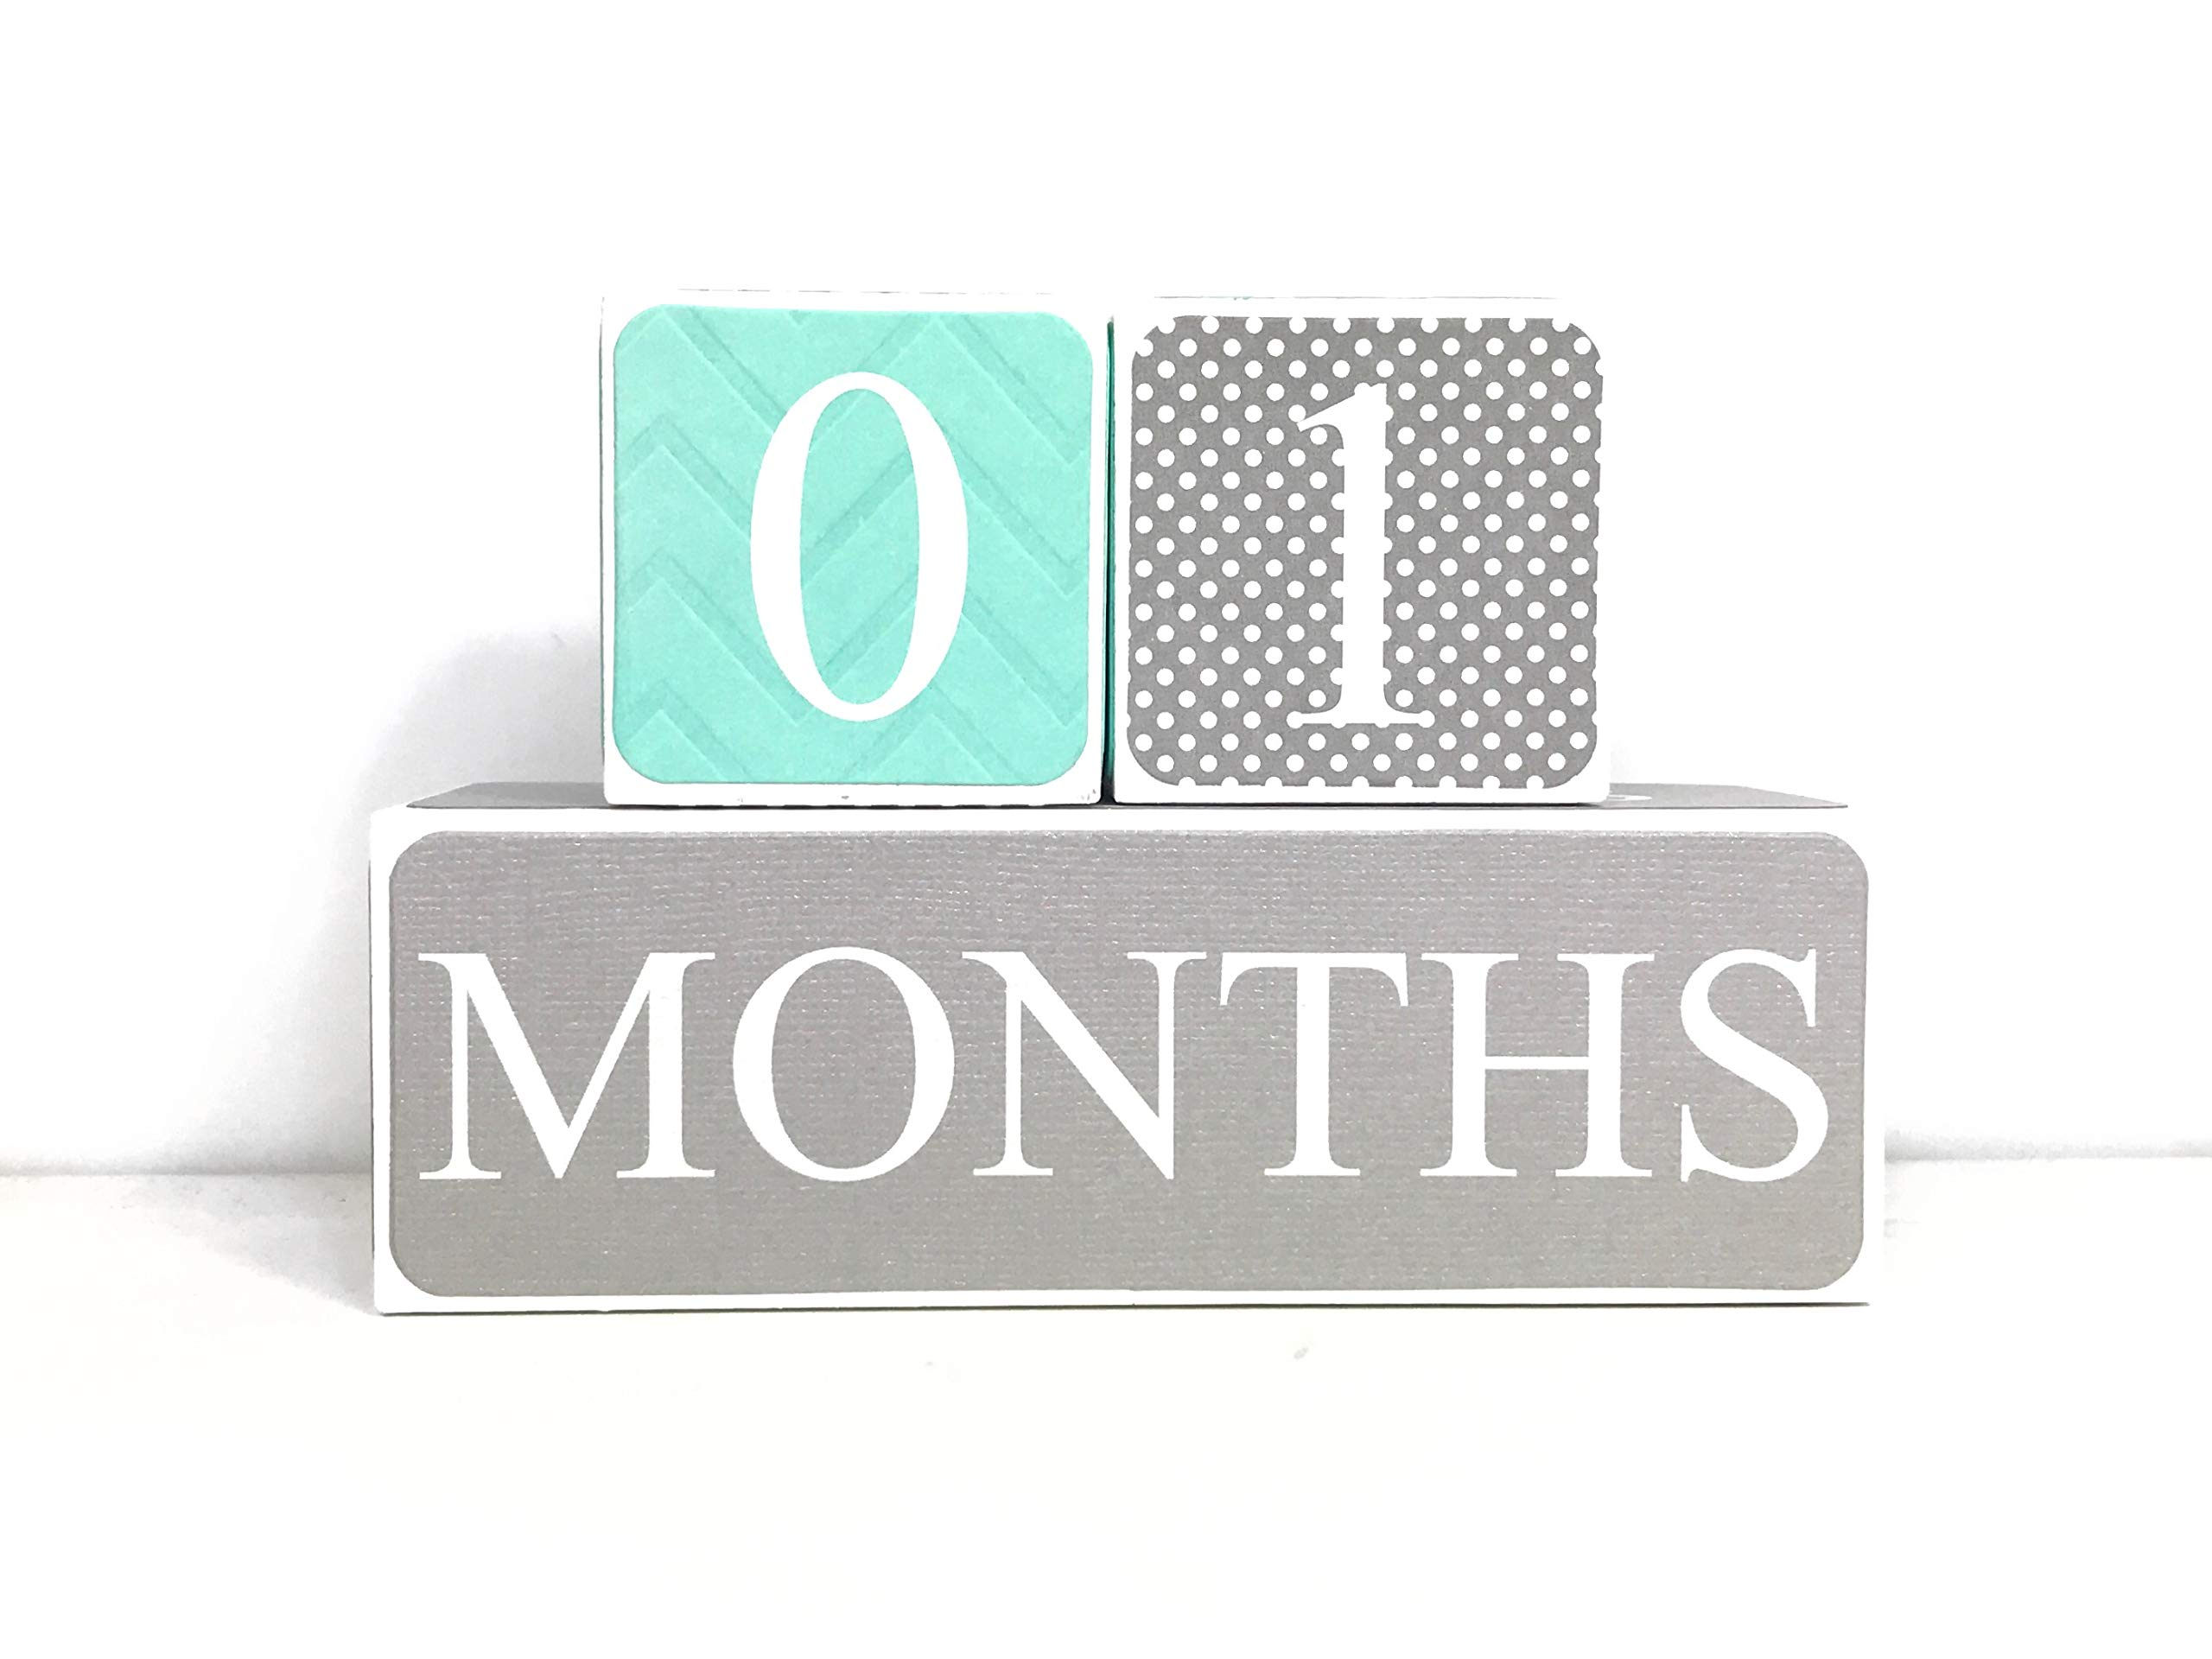 Sweet Sage Studio Wood Baby Milestone Blocks - 6 Color Styles - Best Baby Age Photo Props, Wooden Age Blocks, Baby Photography Props, Nursery Decor, (Turquoise and Gray)